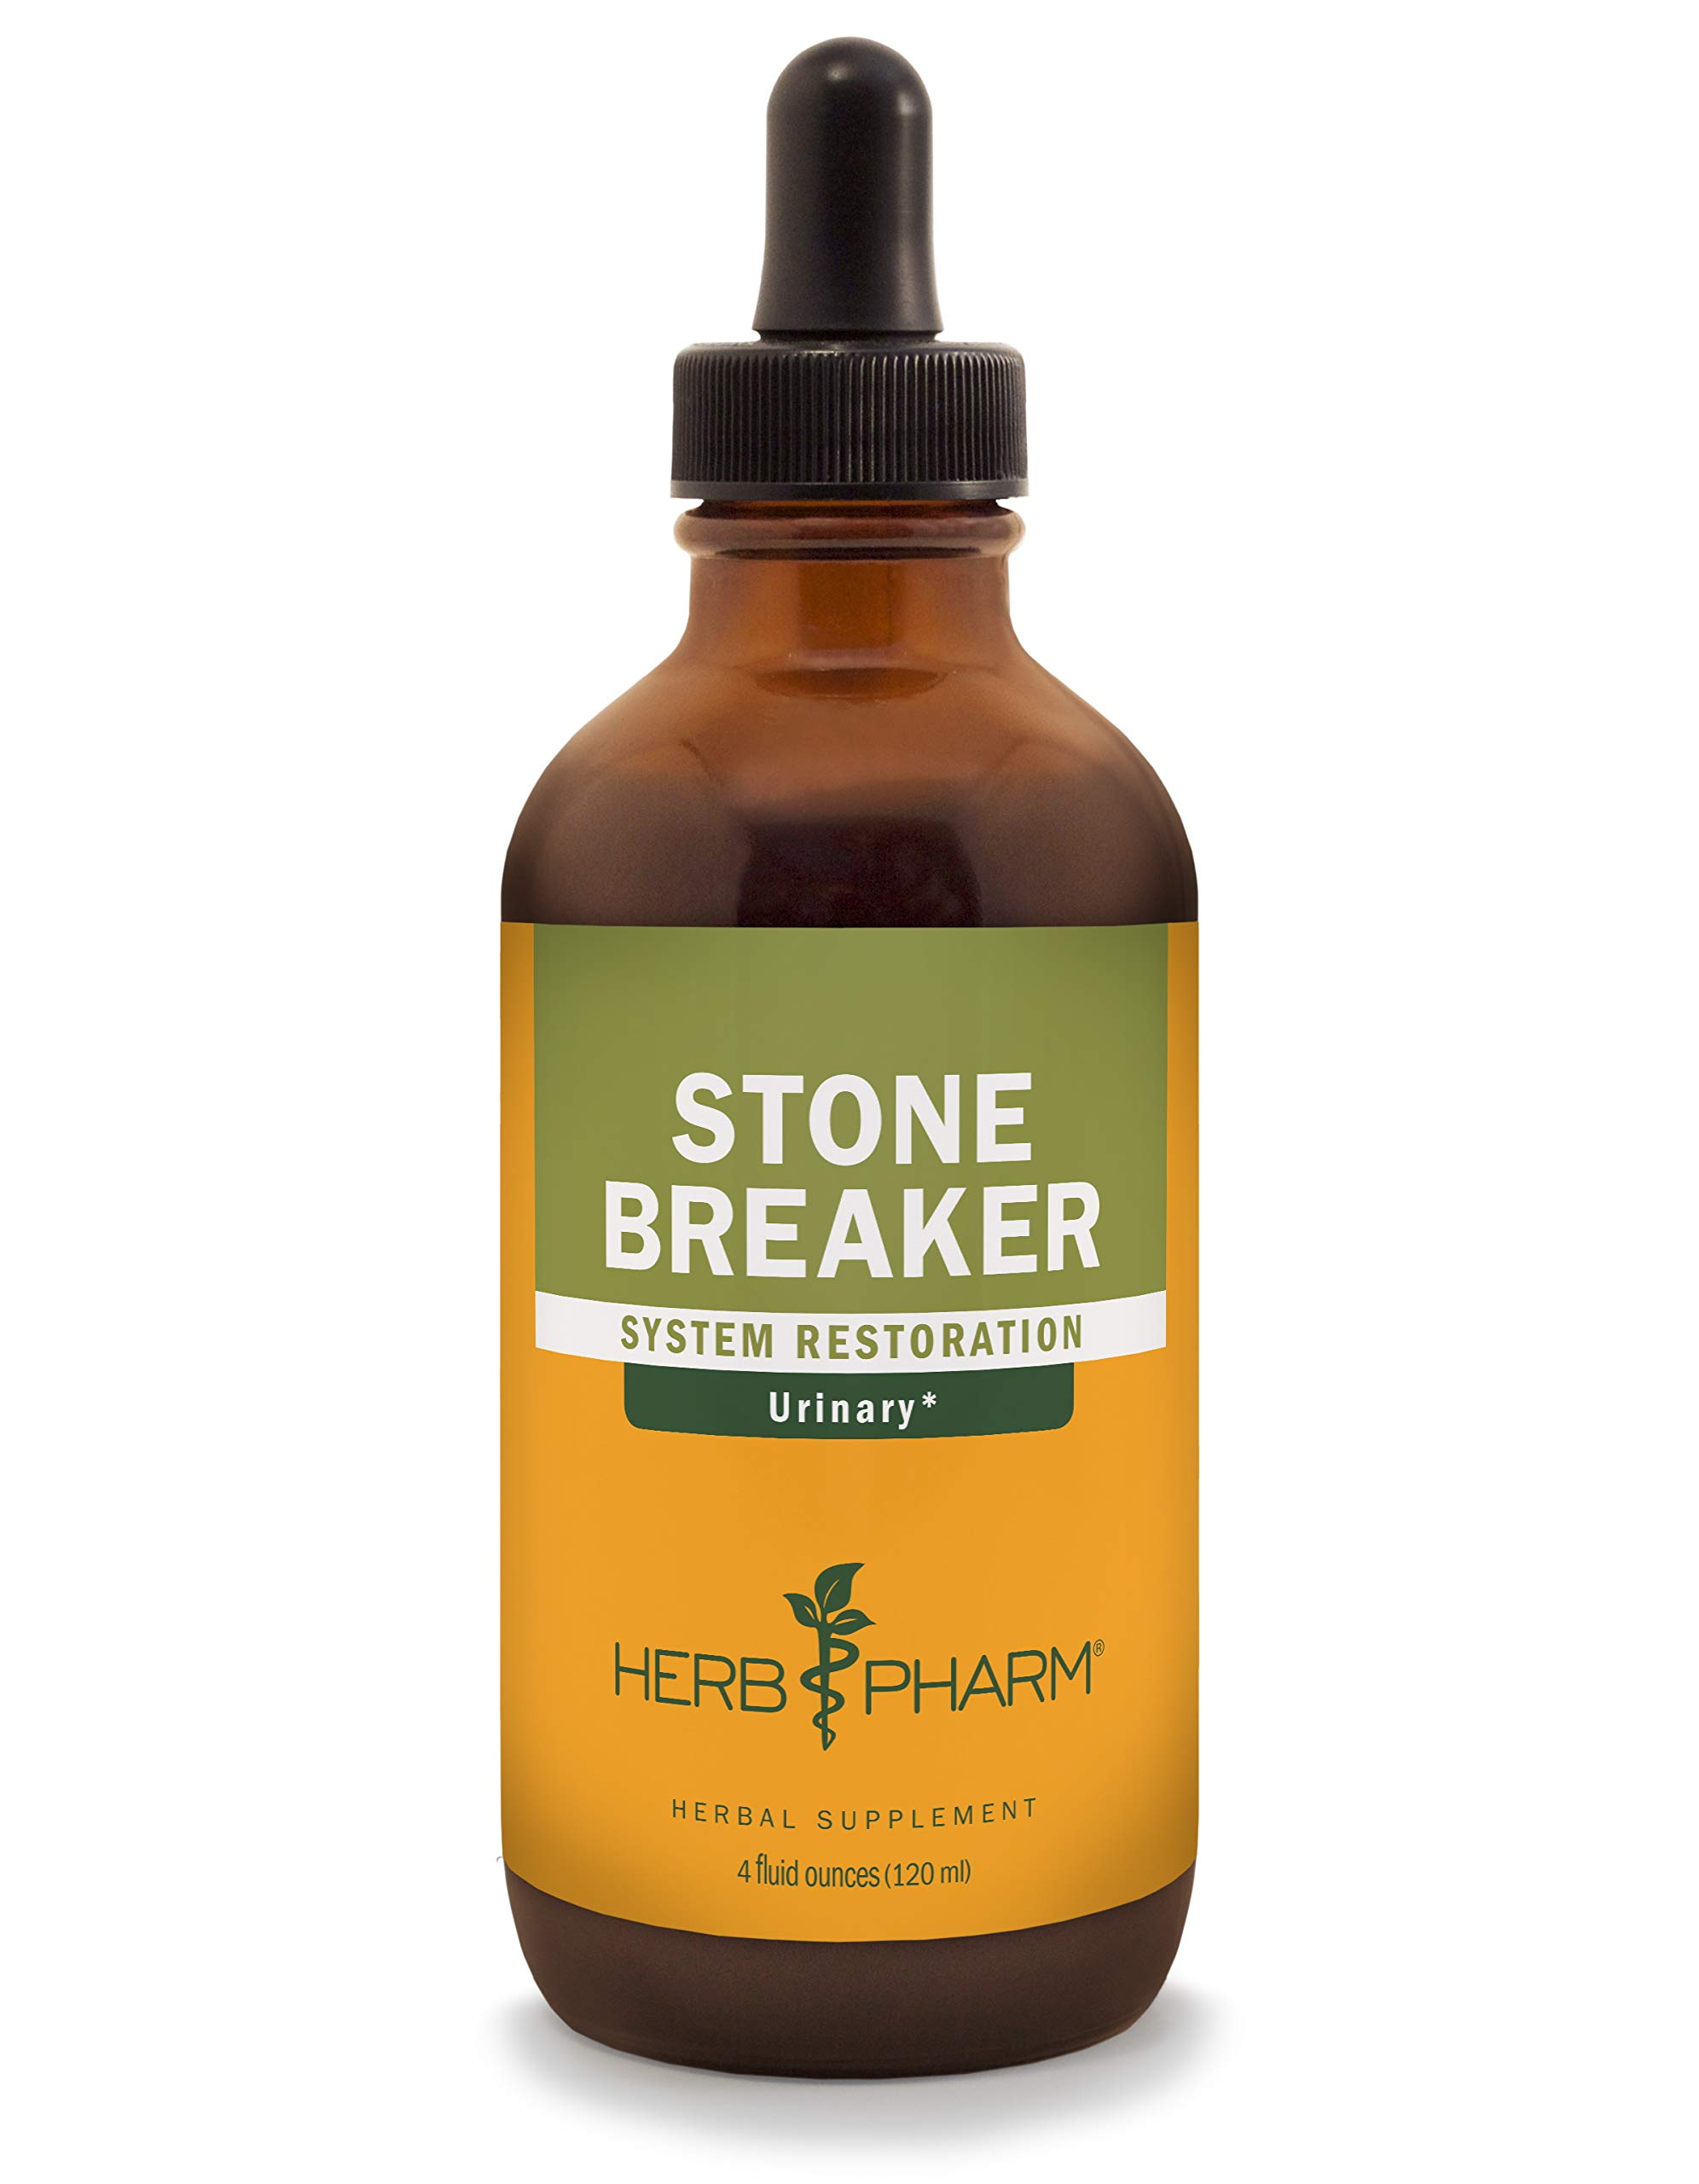 Herb Pharm Stone Breaker (Chanca Piedra) Compound for Urinary System Support - 4 Ounce by Herb Pharm